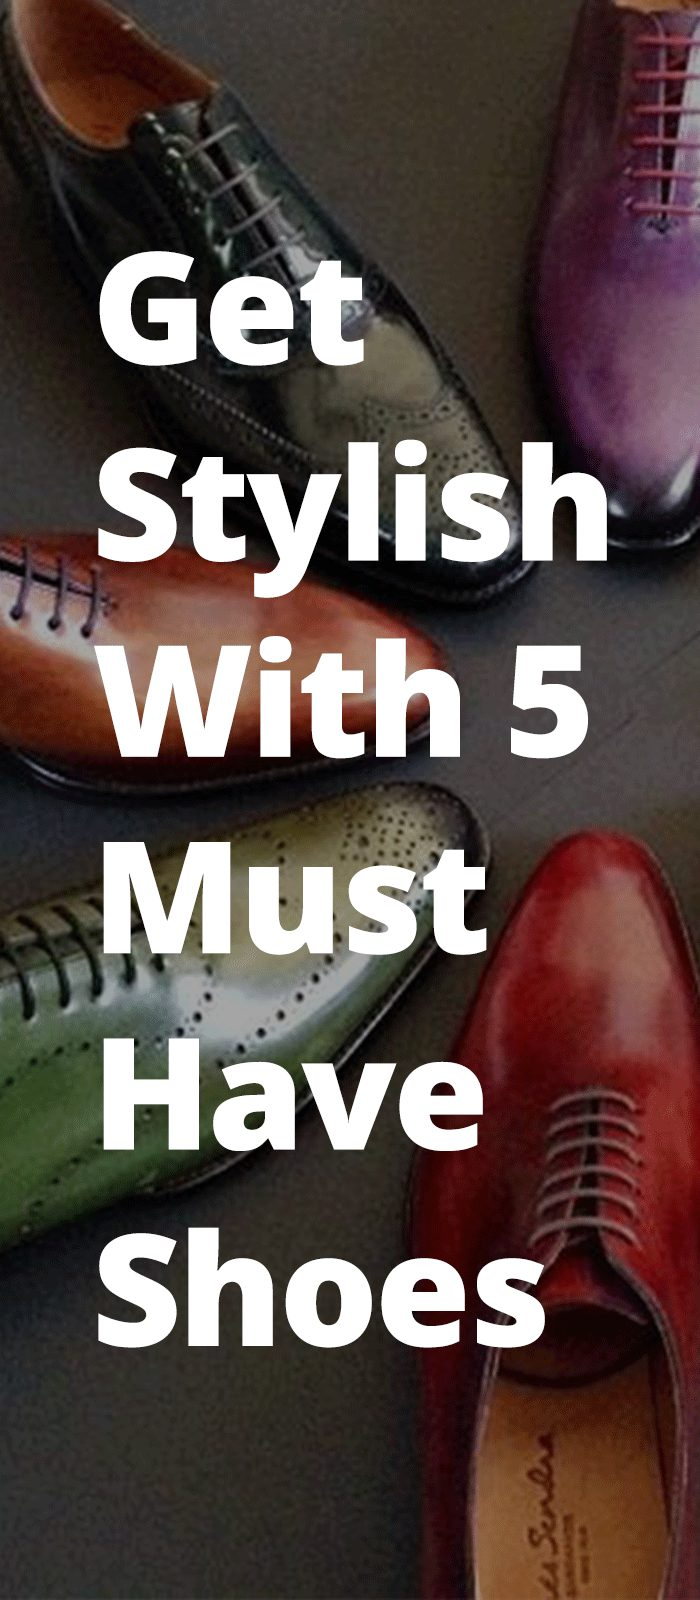 Get Stylish With 5 Must Have Shoes